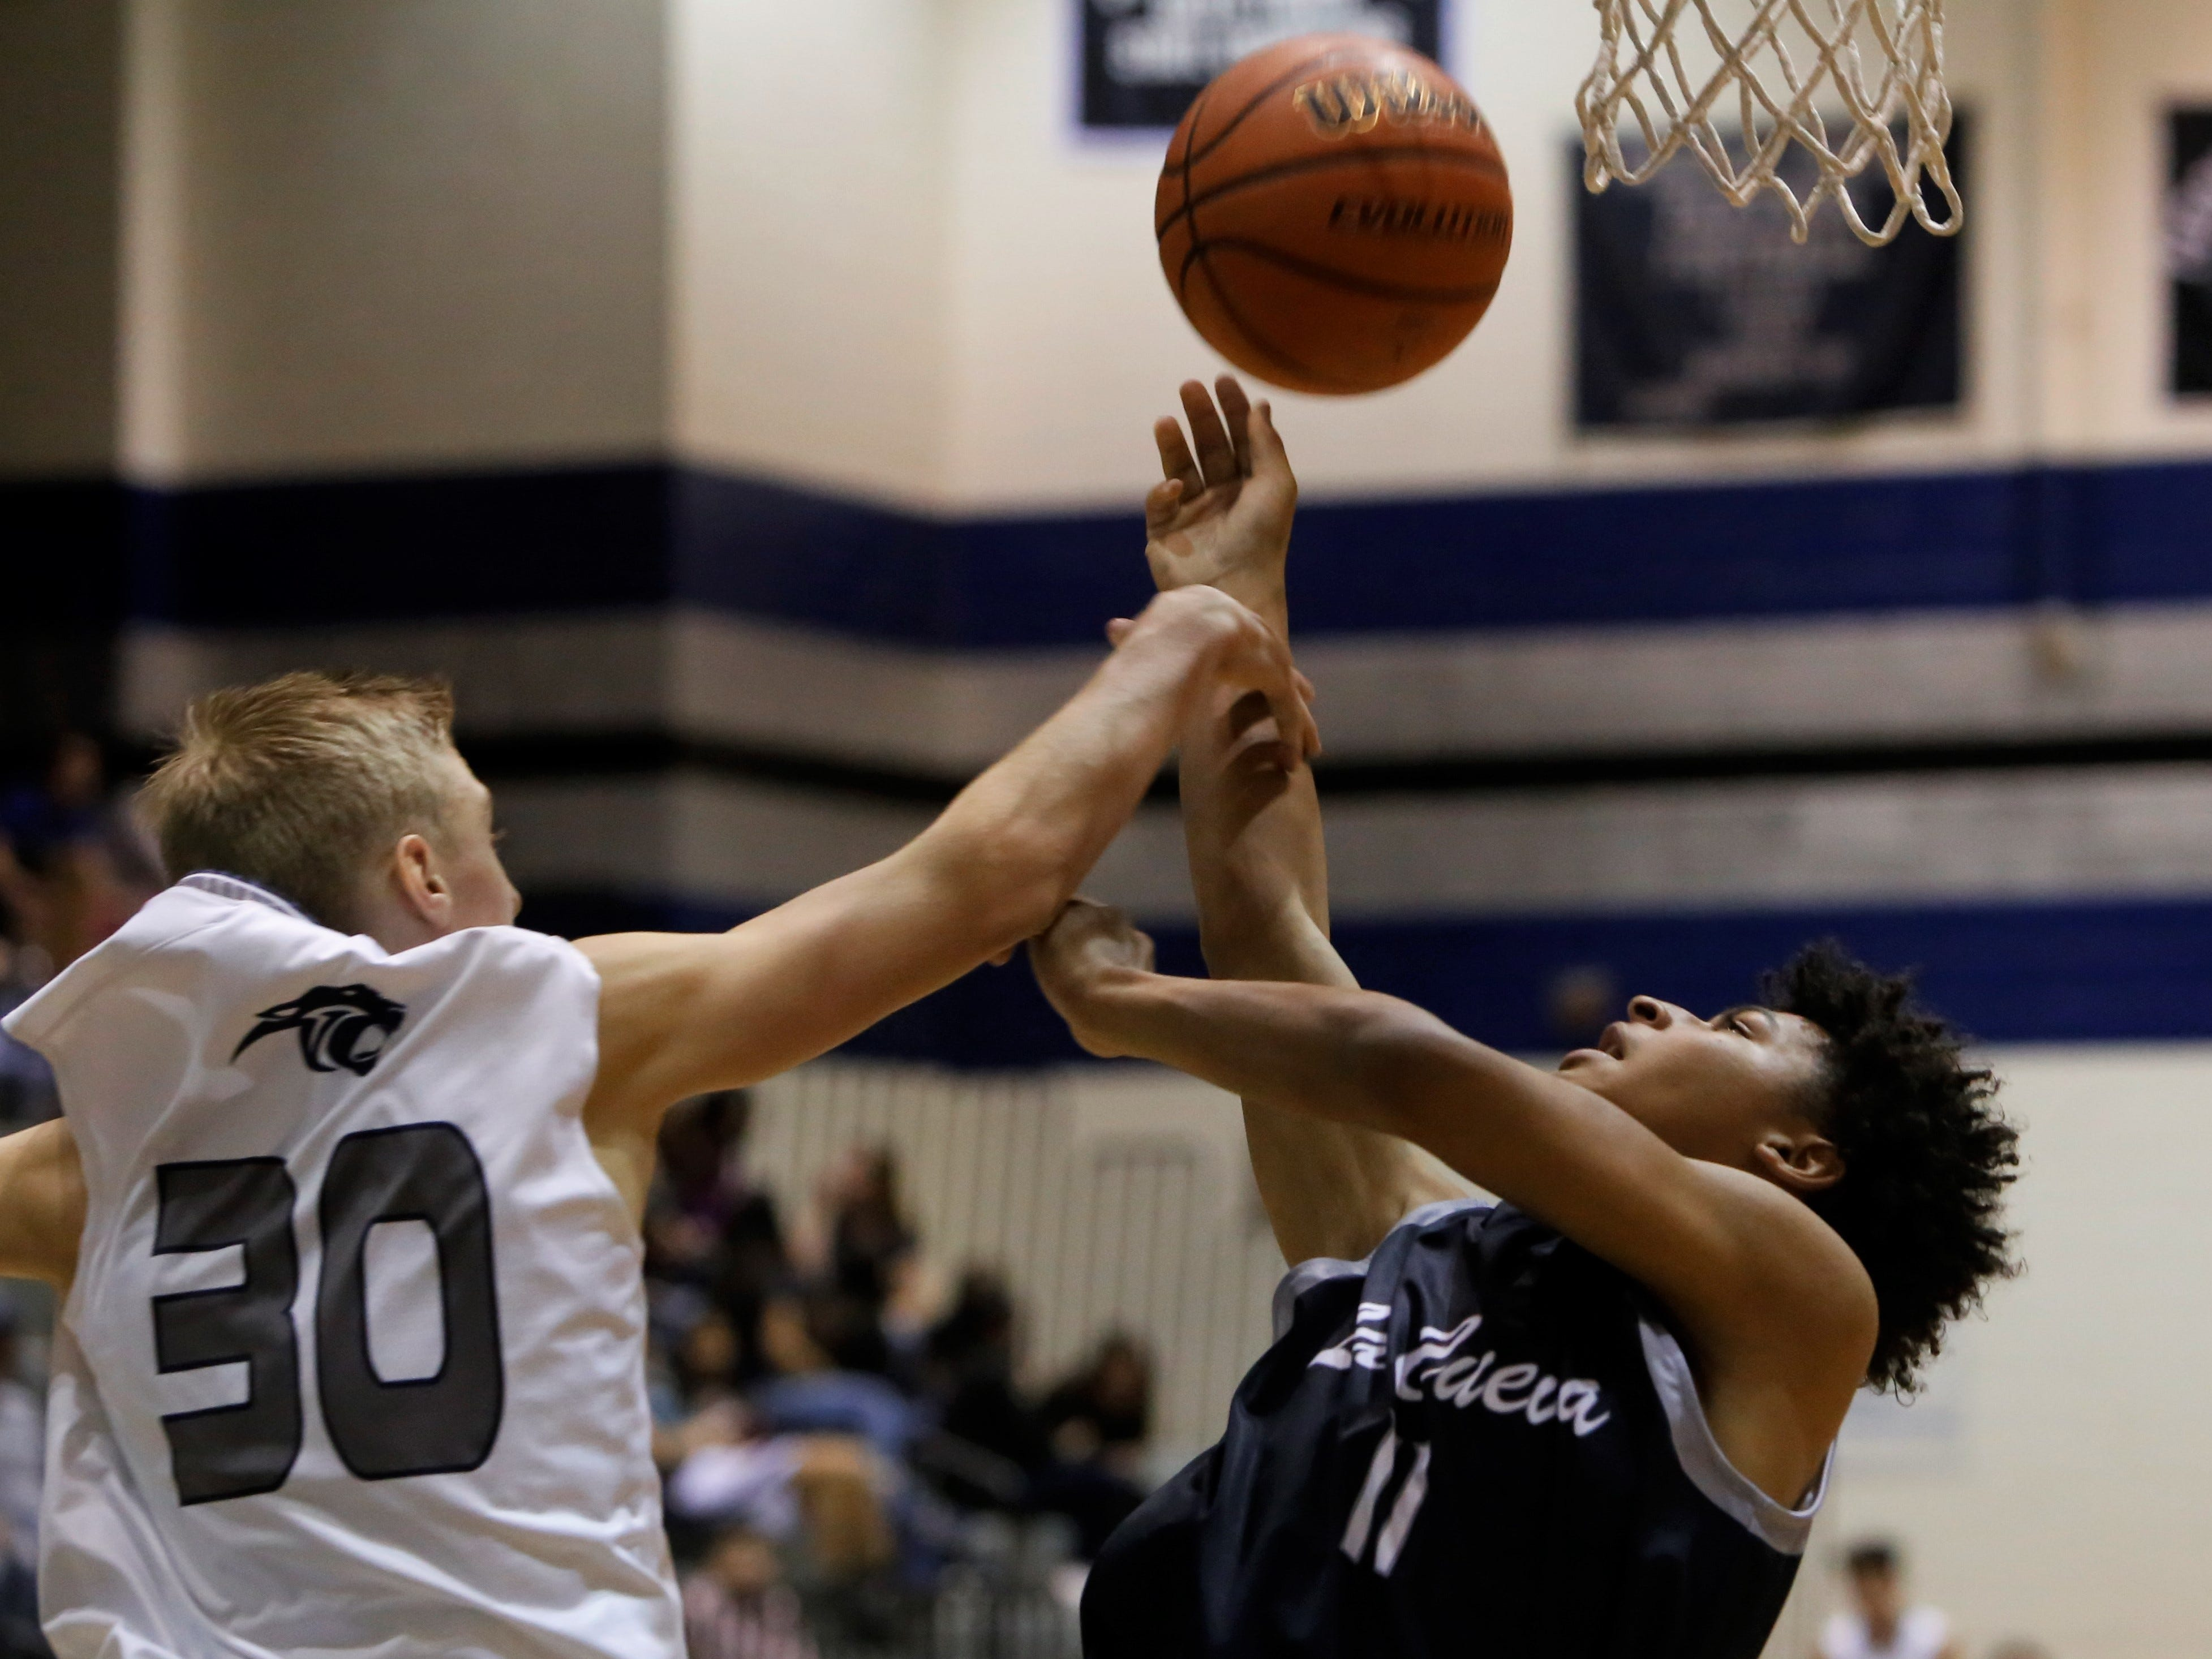 La Cueva's Connor O'Toole drives to the basket and gets fouled by Piedra Vista's Mason Van Ottesen during Saturday's District 2-5A game at Jerry A. Conner Fieldhouse in Farmington.